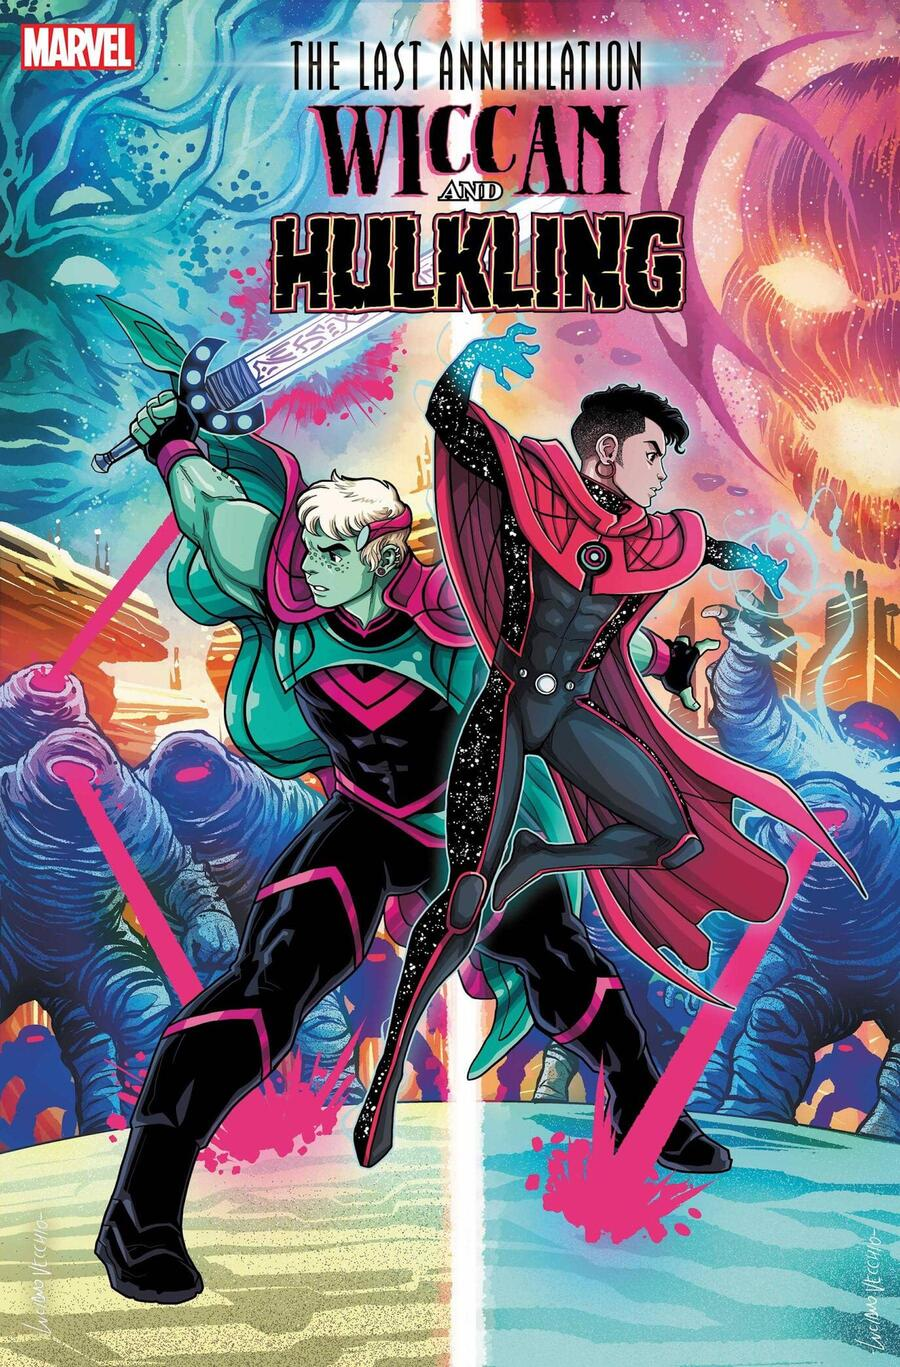 THE LAST ANNIHILATION: WICCAN & HULKLING #1